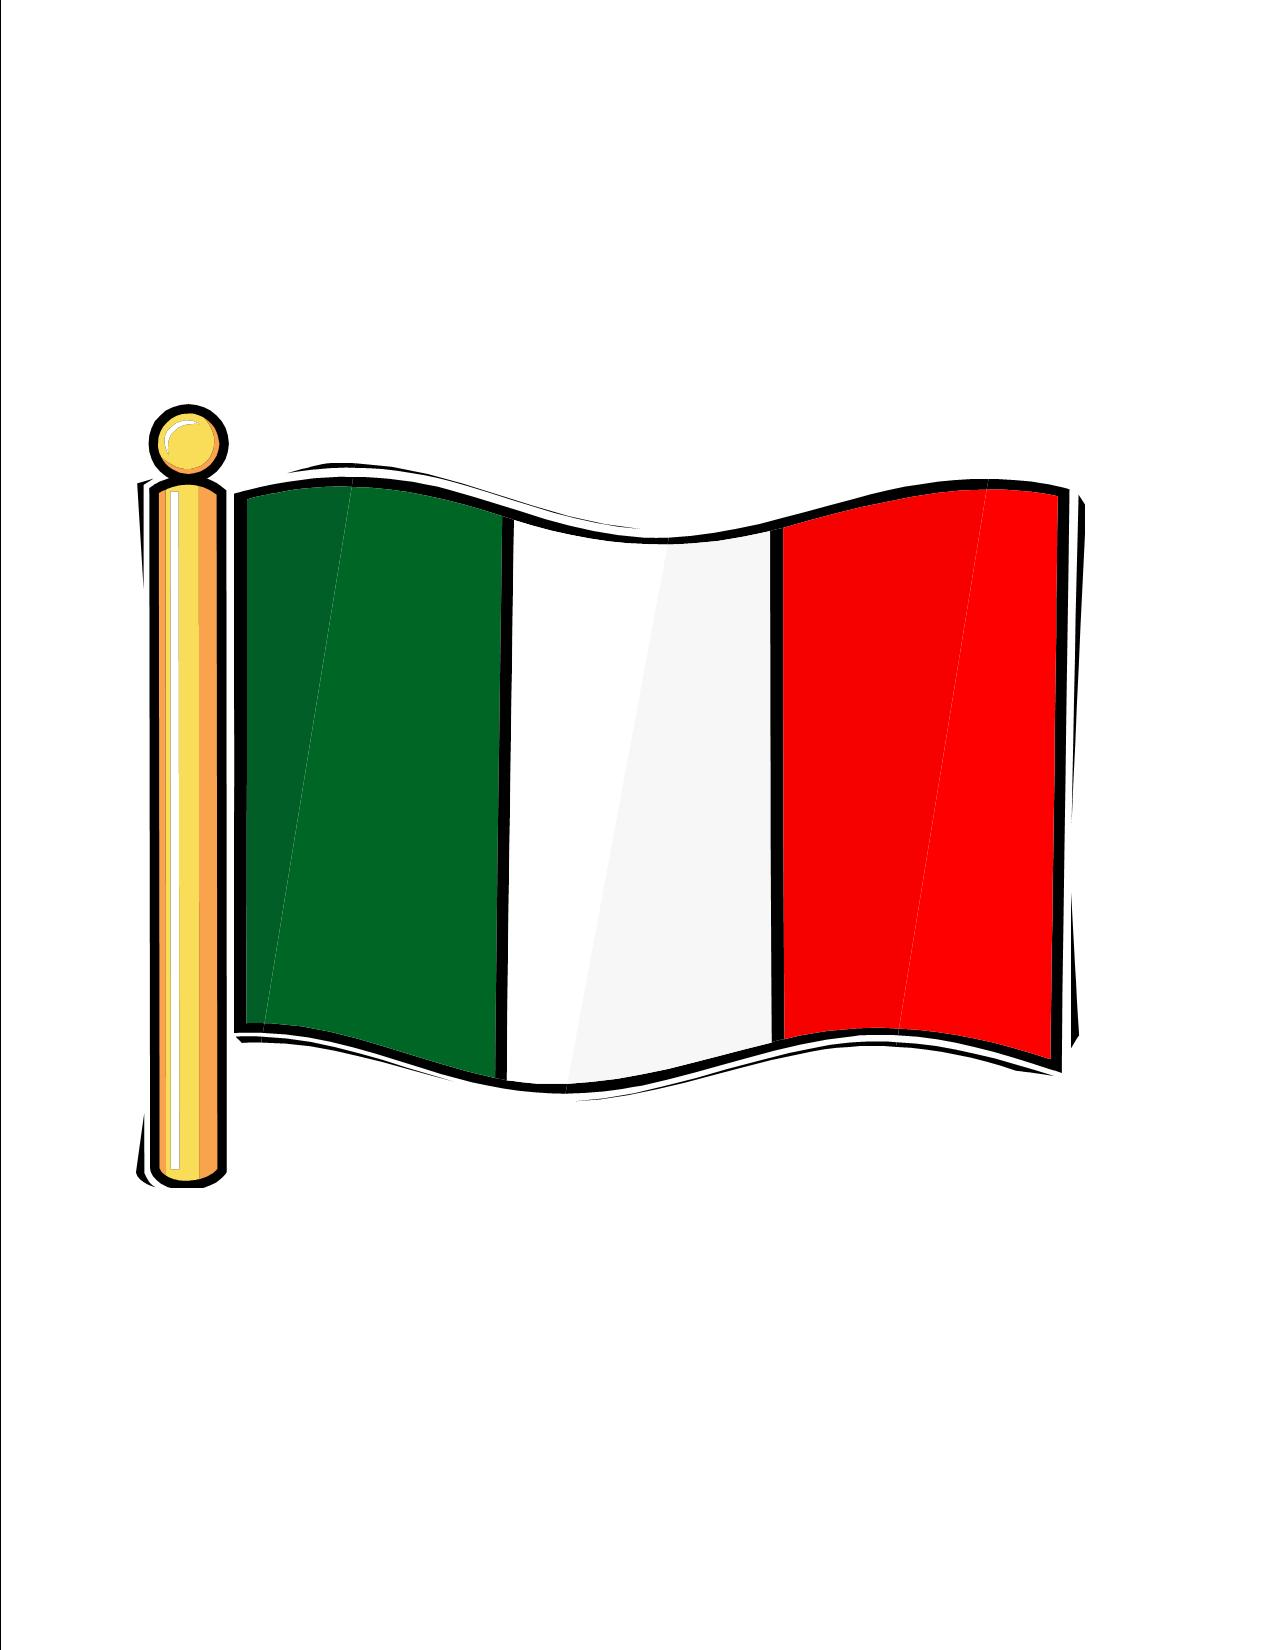 Italian Flag Images Free - ClipArt Best